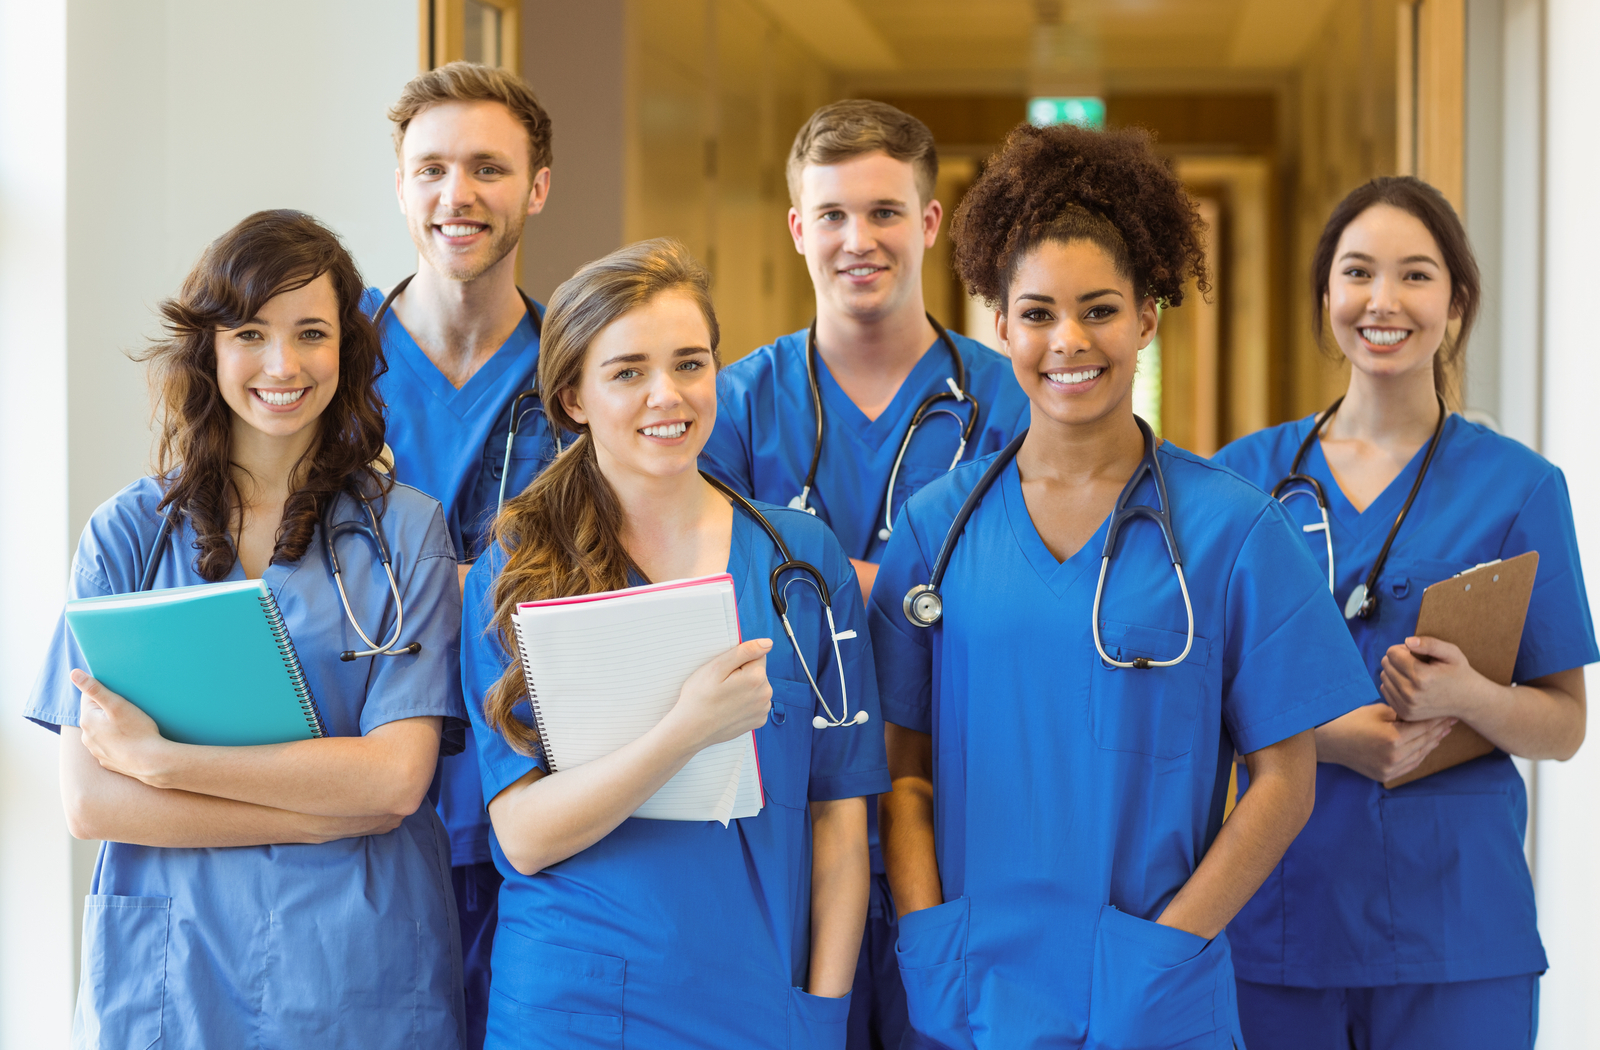 a-group-of-medical-students-top-5-medical-schools-to-study-at-in-canada